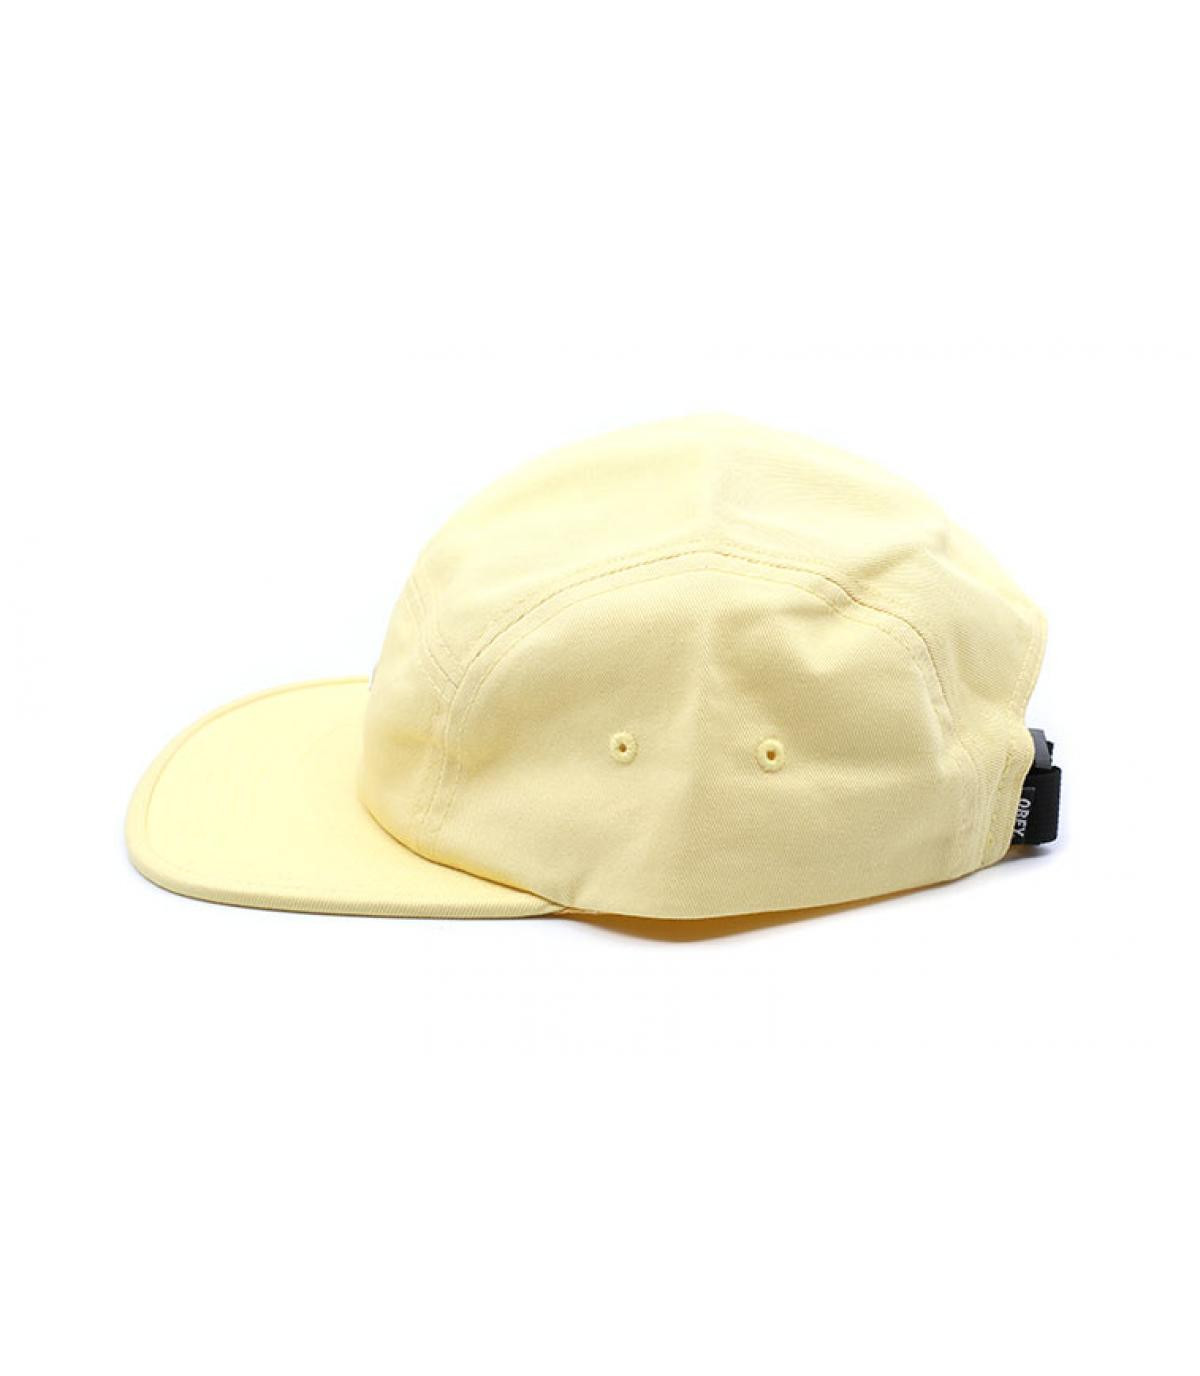 Détails Sleeper 5 Panel pale yellow - image 4